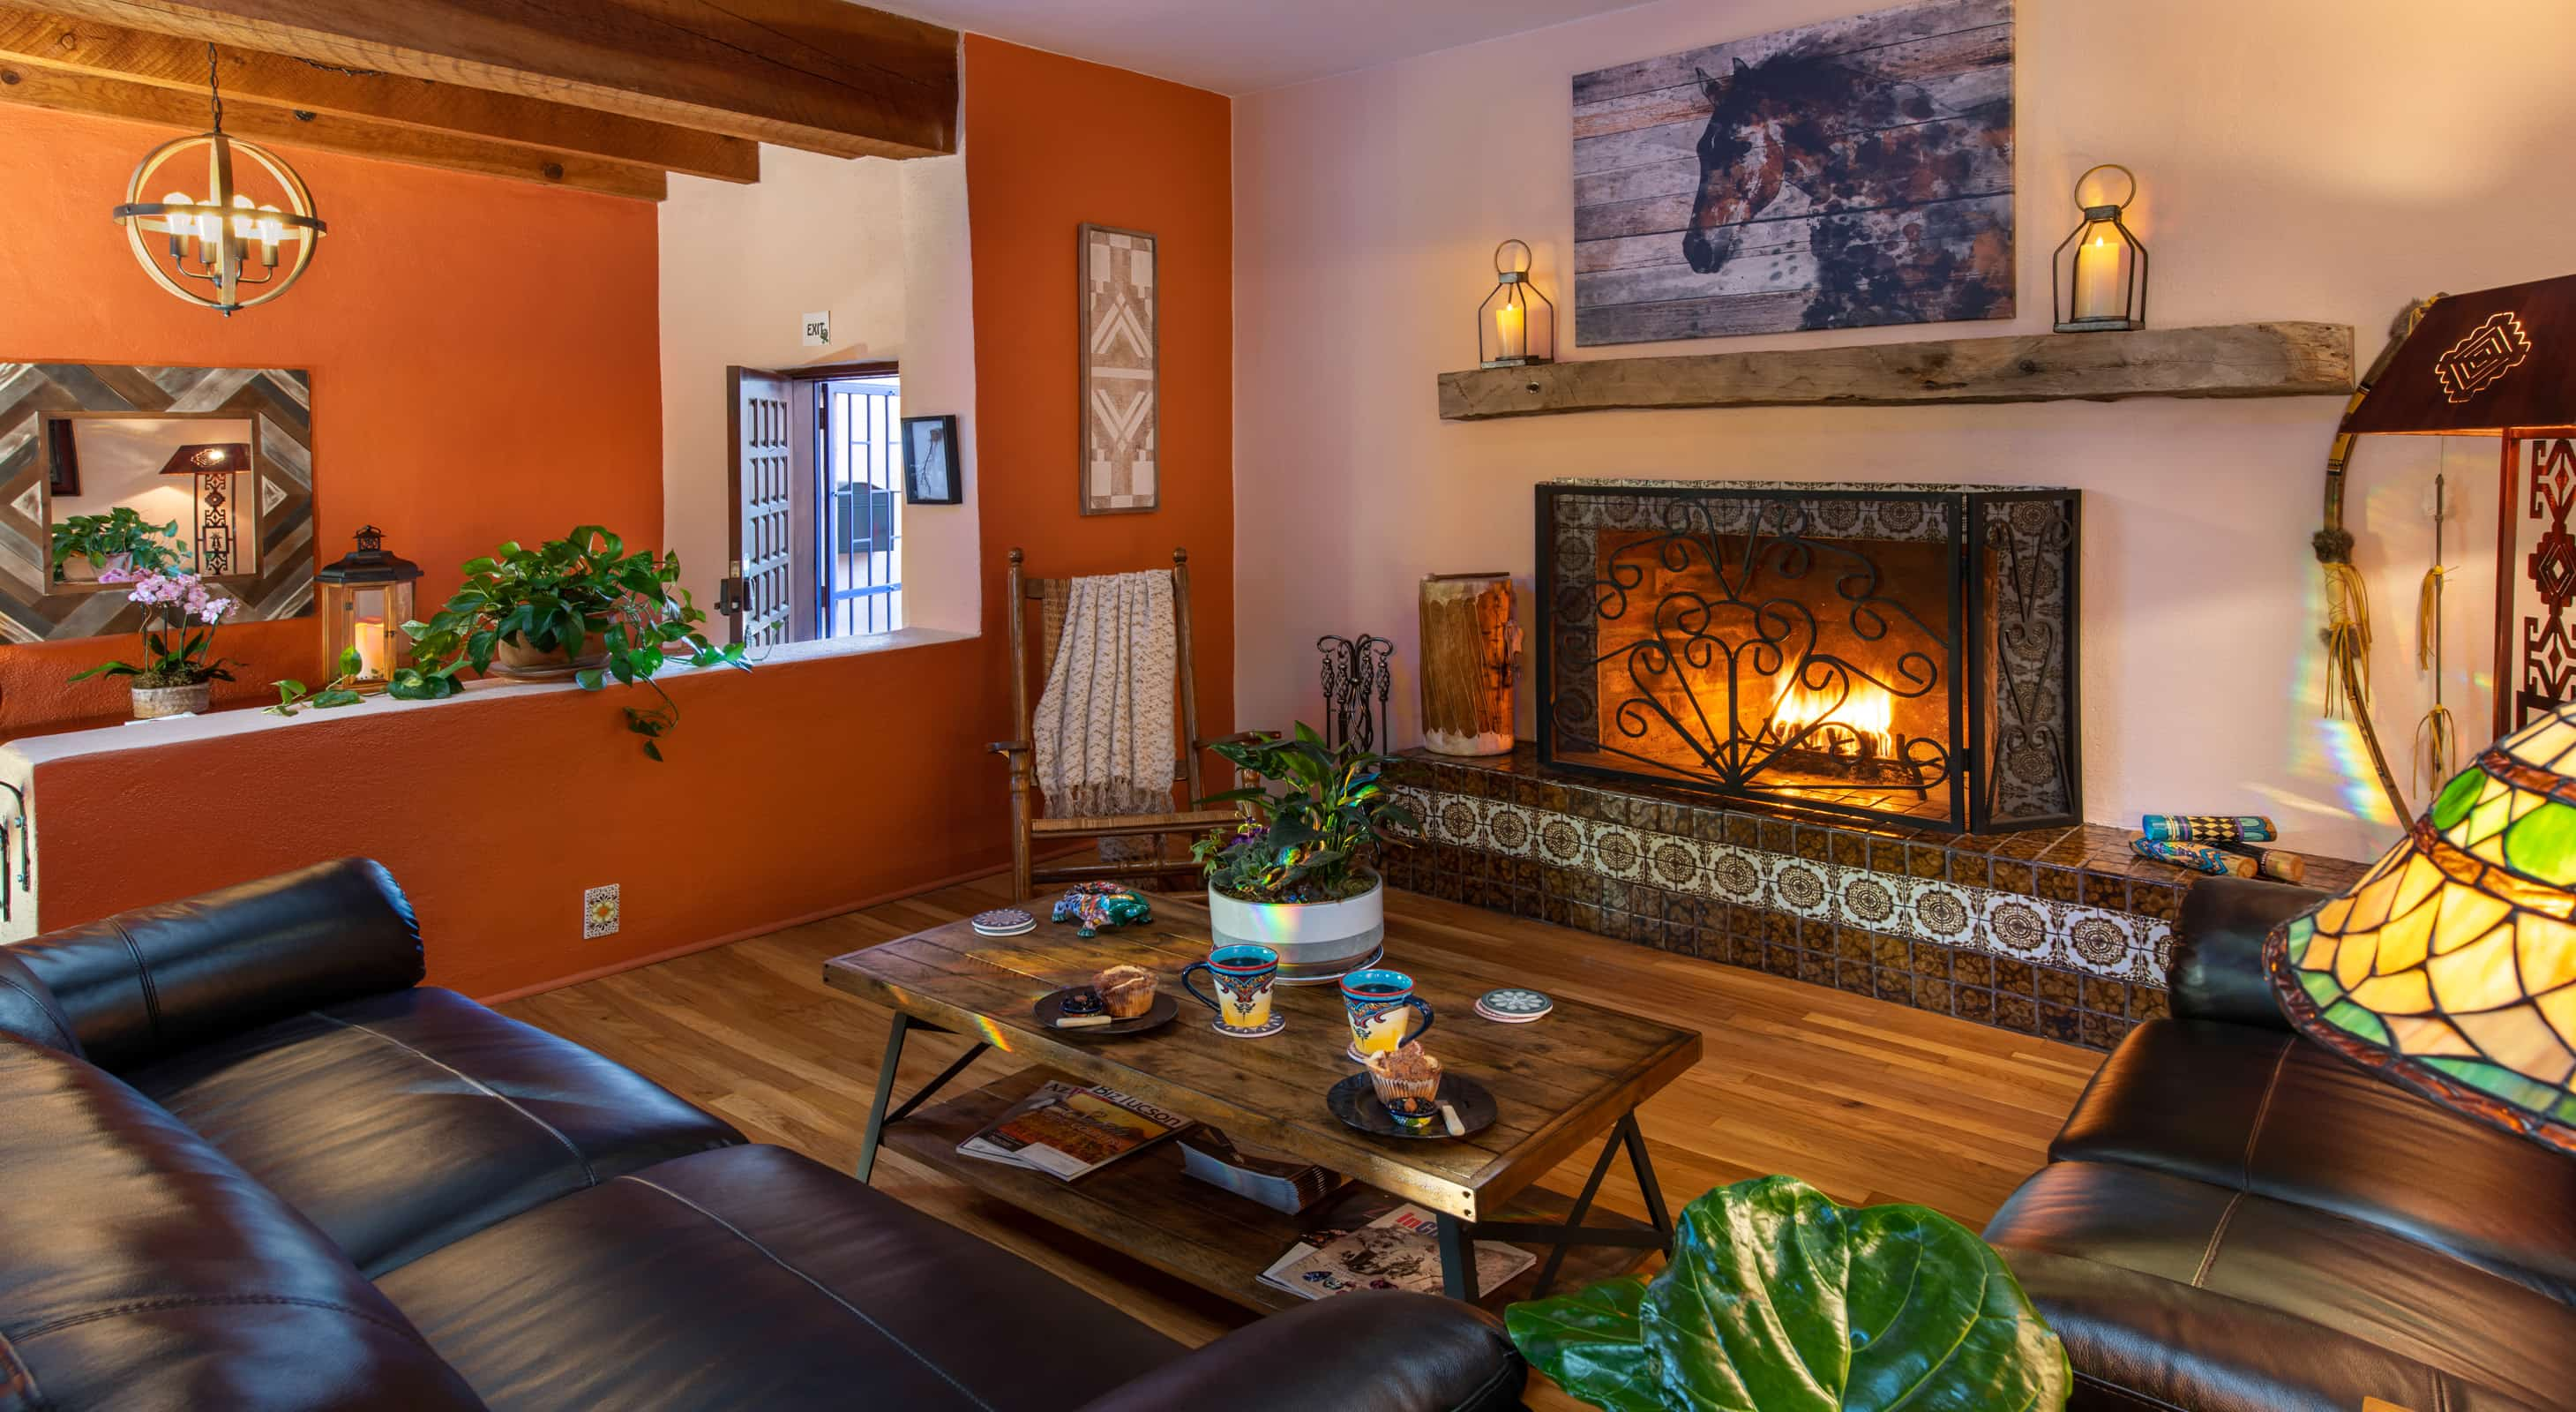 Fireplace common area for a Tucson Getaway